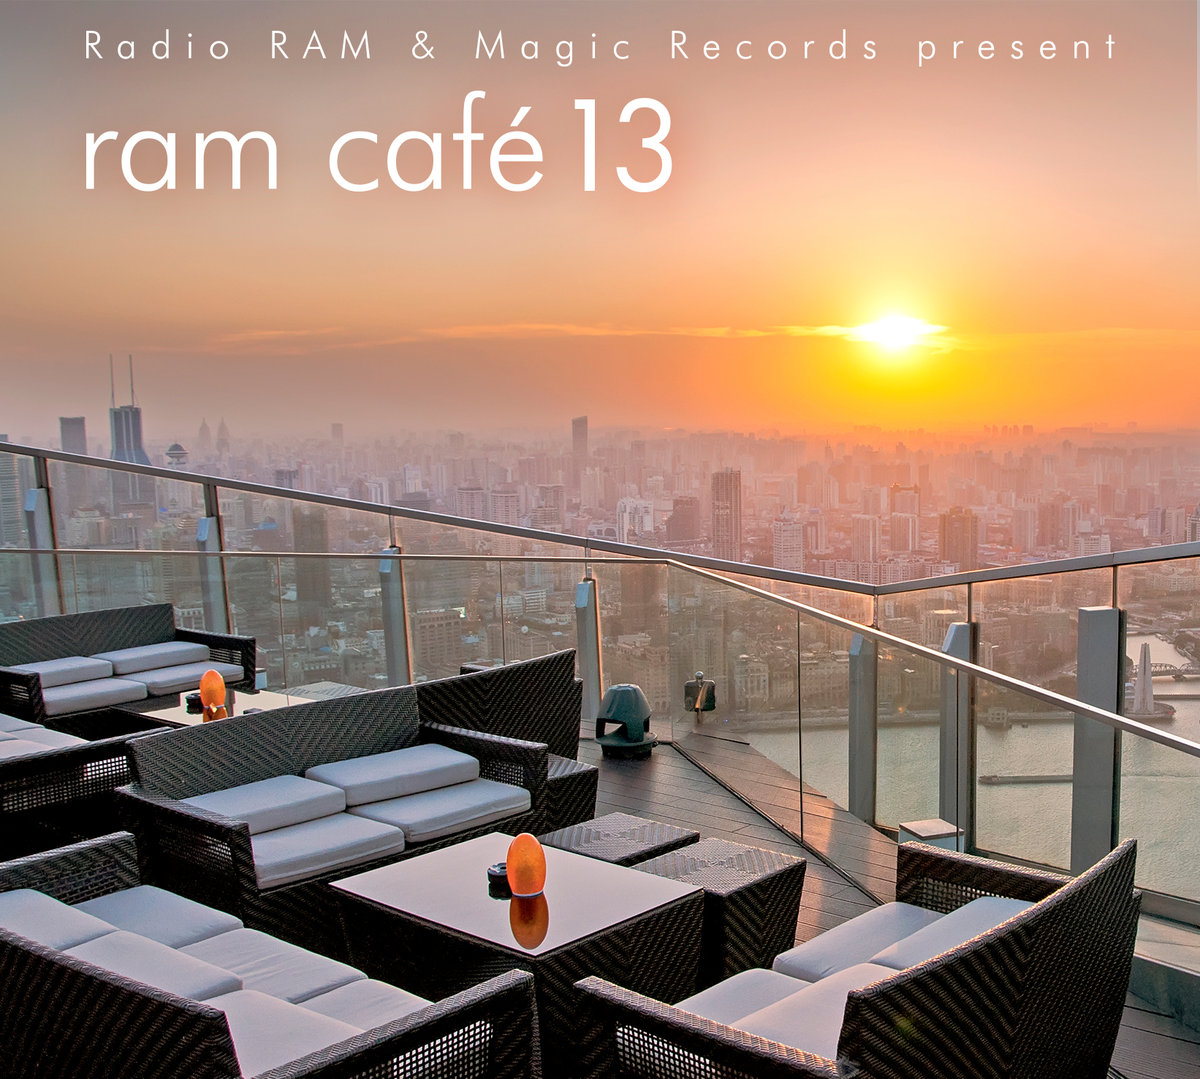 Ram Cafe 13 – Lounge & Chillout